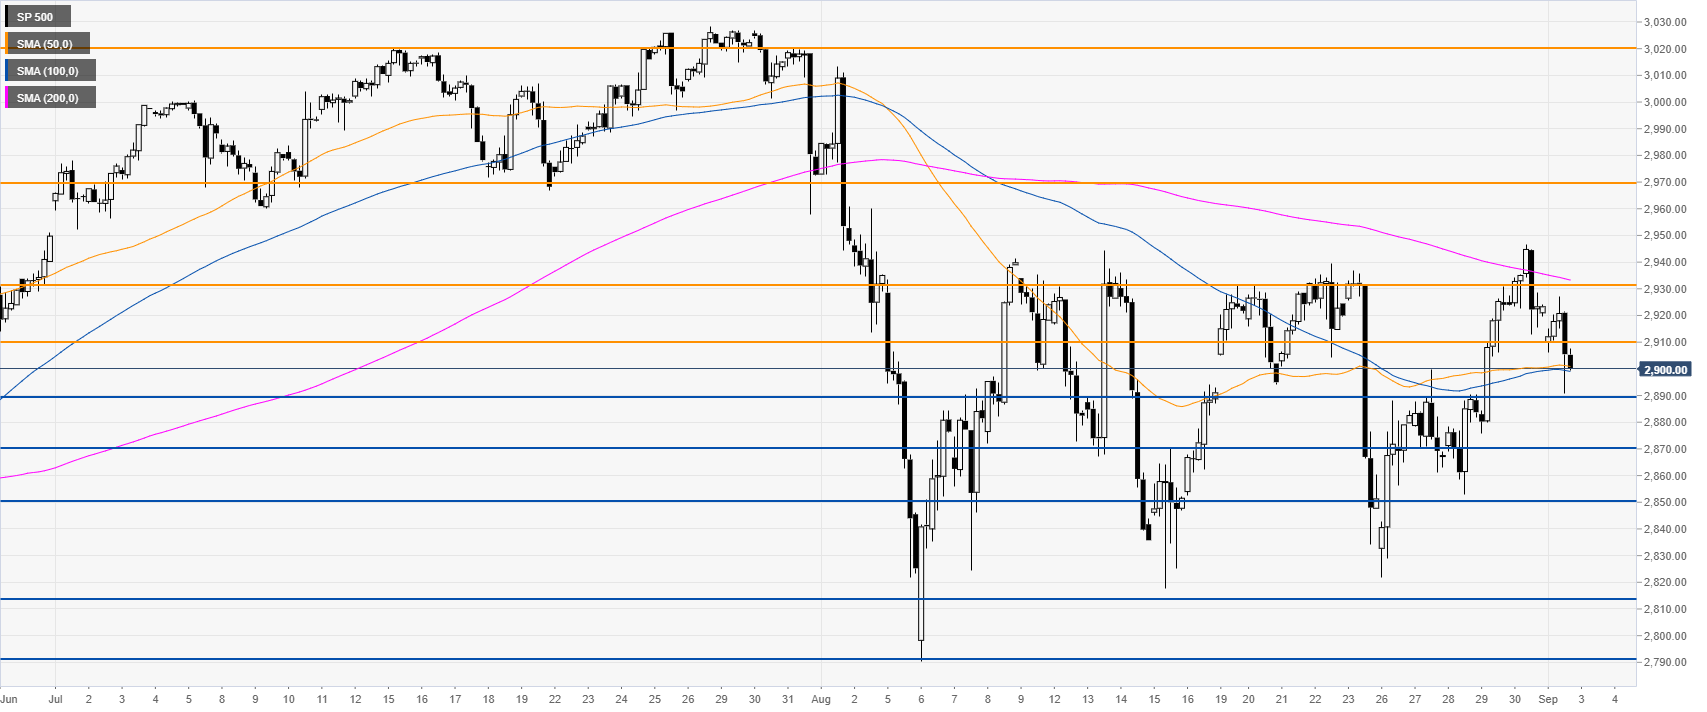 S&P500 technical analysis: Index loses steam and ends the